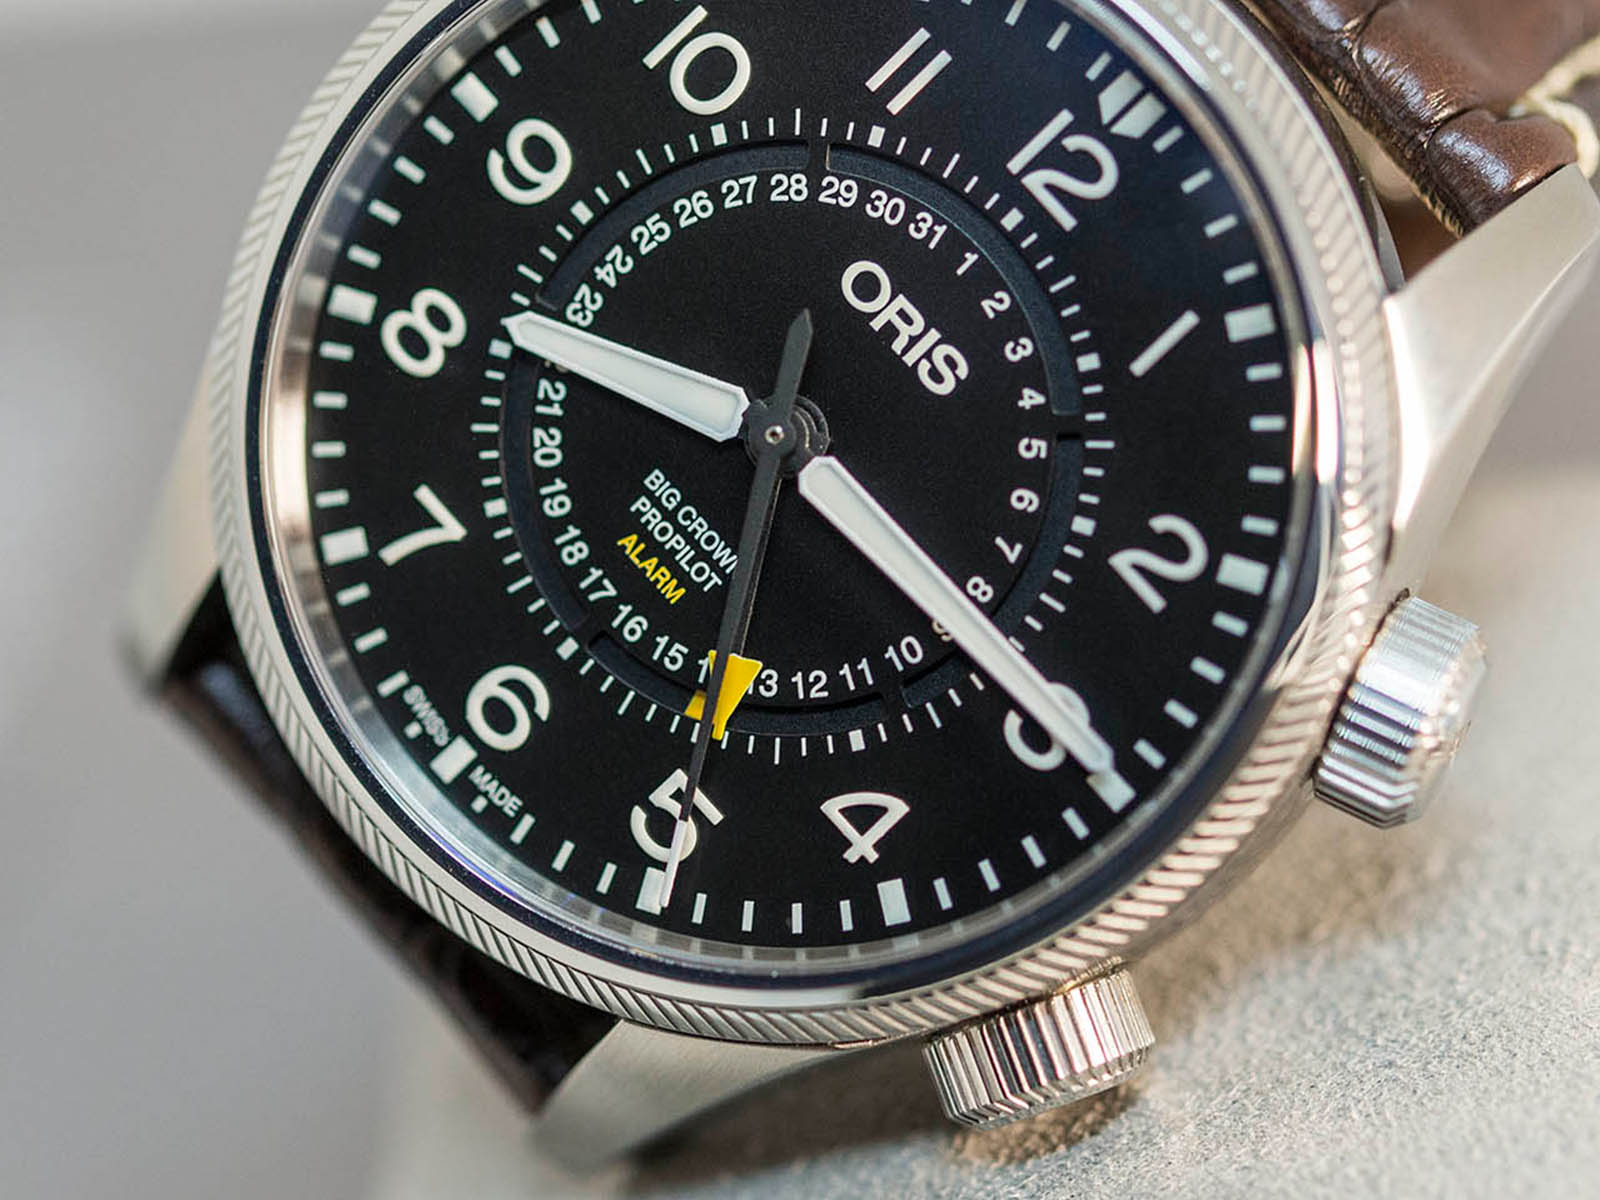 oris-supports-local-heroes-4.jpg